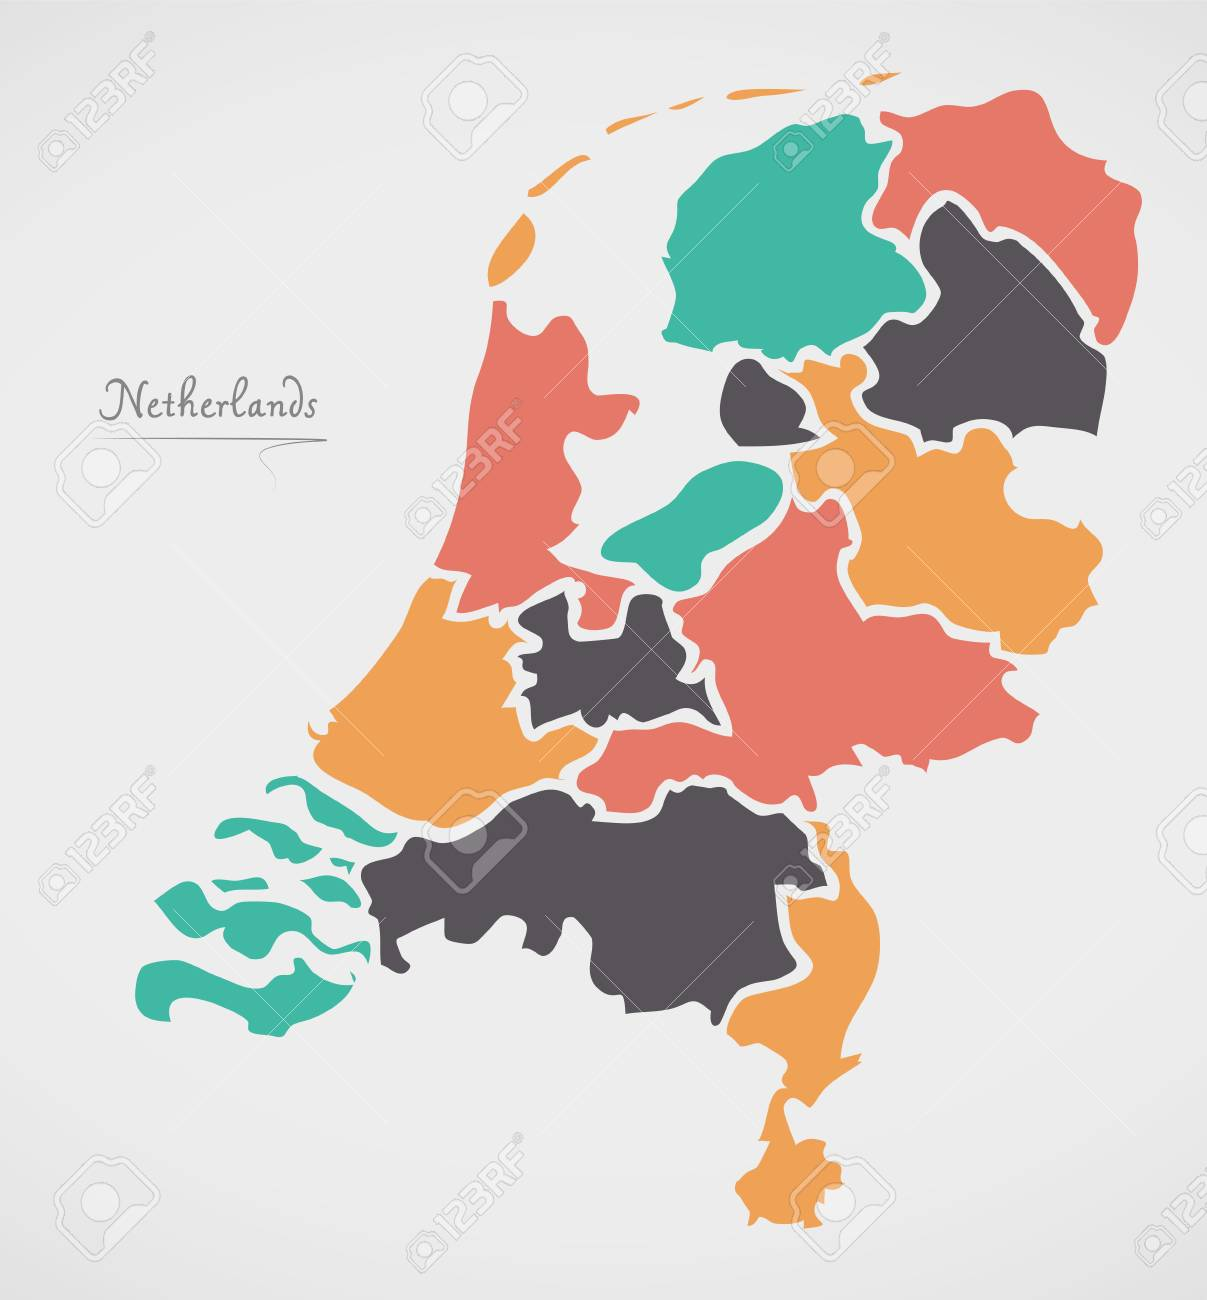 Netherlands map with states and modern round shapes royalty free netherlands map with states and modern round shapes stock vector 80784643 gumiabroncs Choice Image